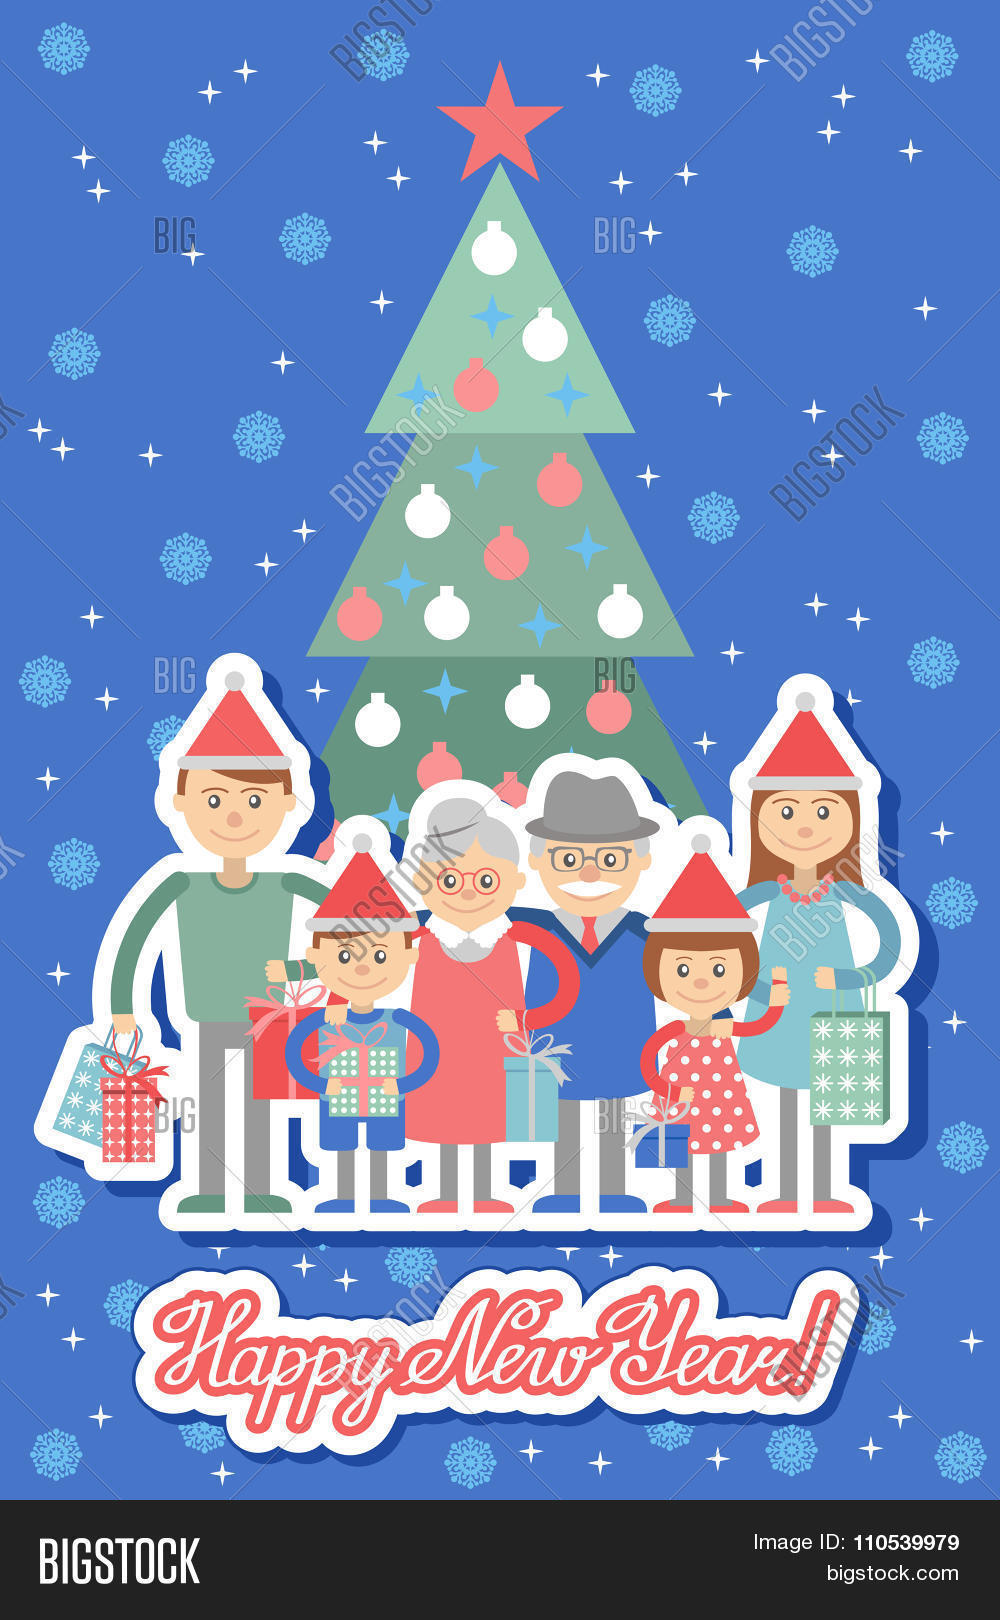 big,box,boy,buy,cap,card,celebration,character,child,children,christmas,customers,cute,dad,daddy,daughter,decoration,elderly,embrace,eve,family,father,funny,gifts,girl,grandfather,grandmother,grandpa,grandparents,granny,greeting,happy,illustration,little,man,mom,mother,old,people,retirement,senior,shop,shopping,smile,son,vector,woman